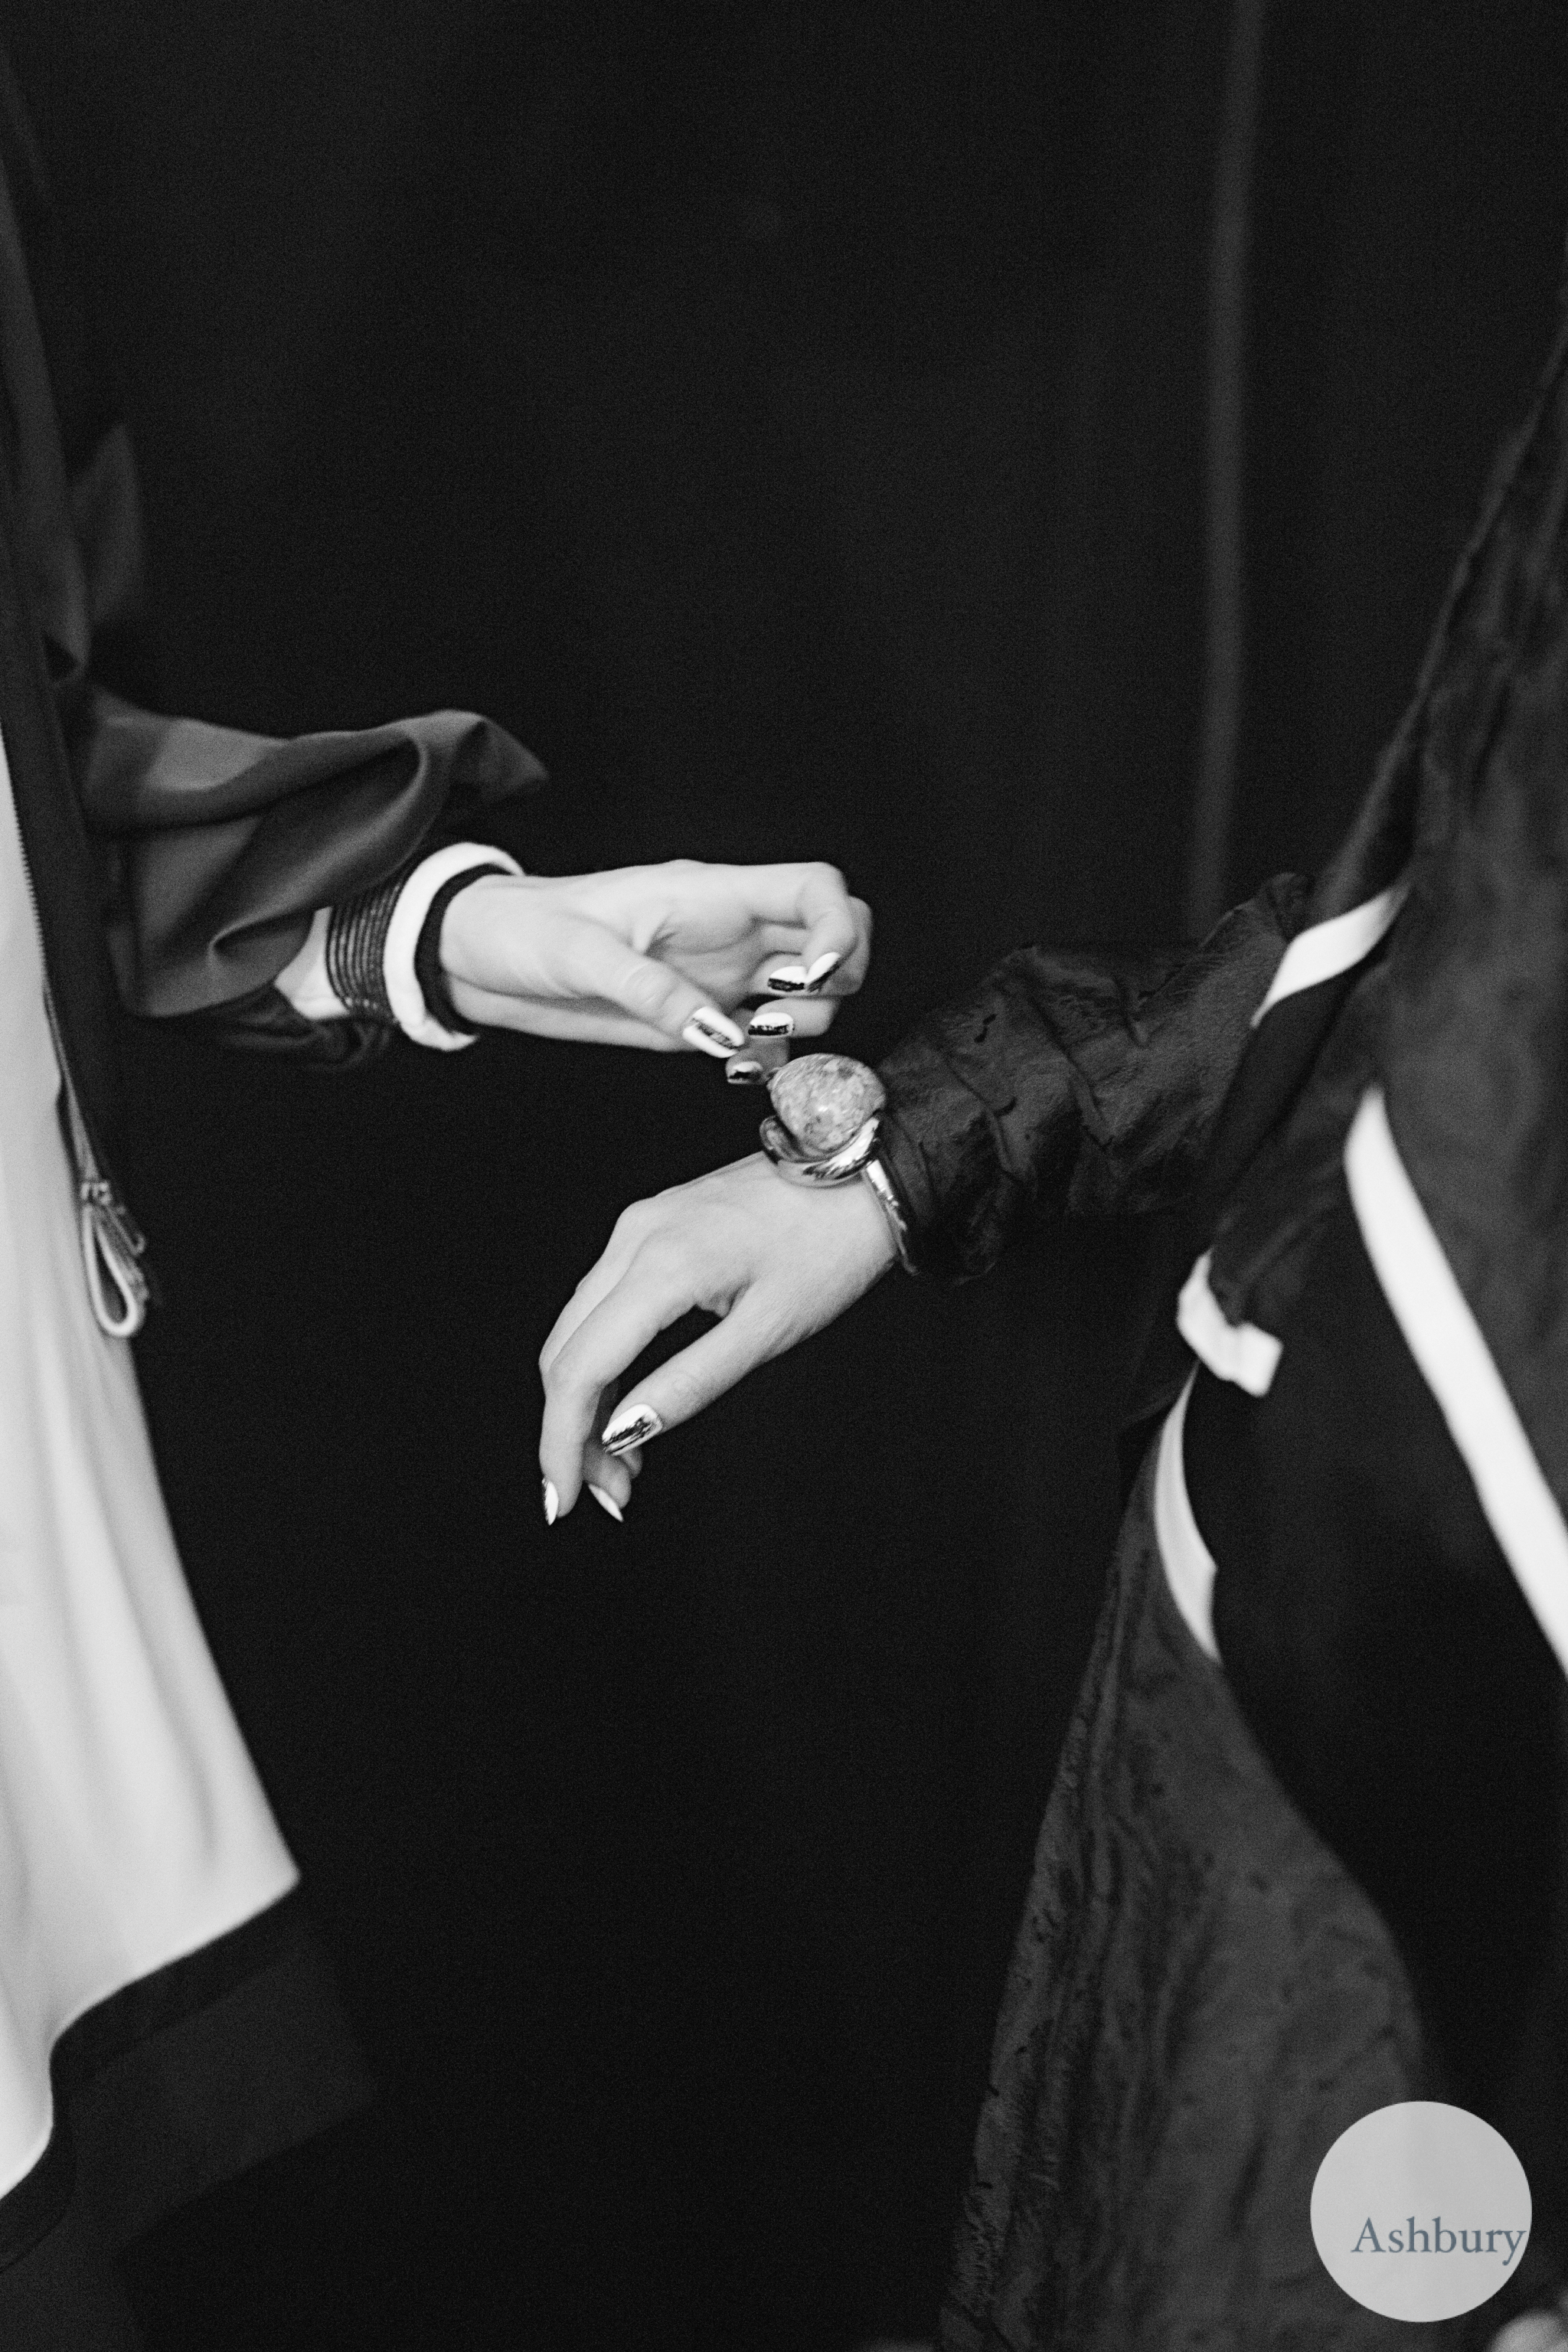 kenzo backstage fall/winter 2015 - hands